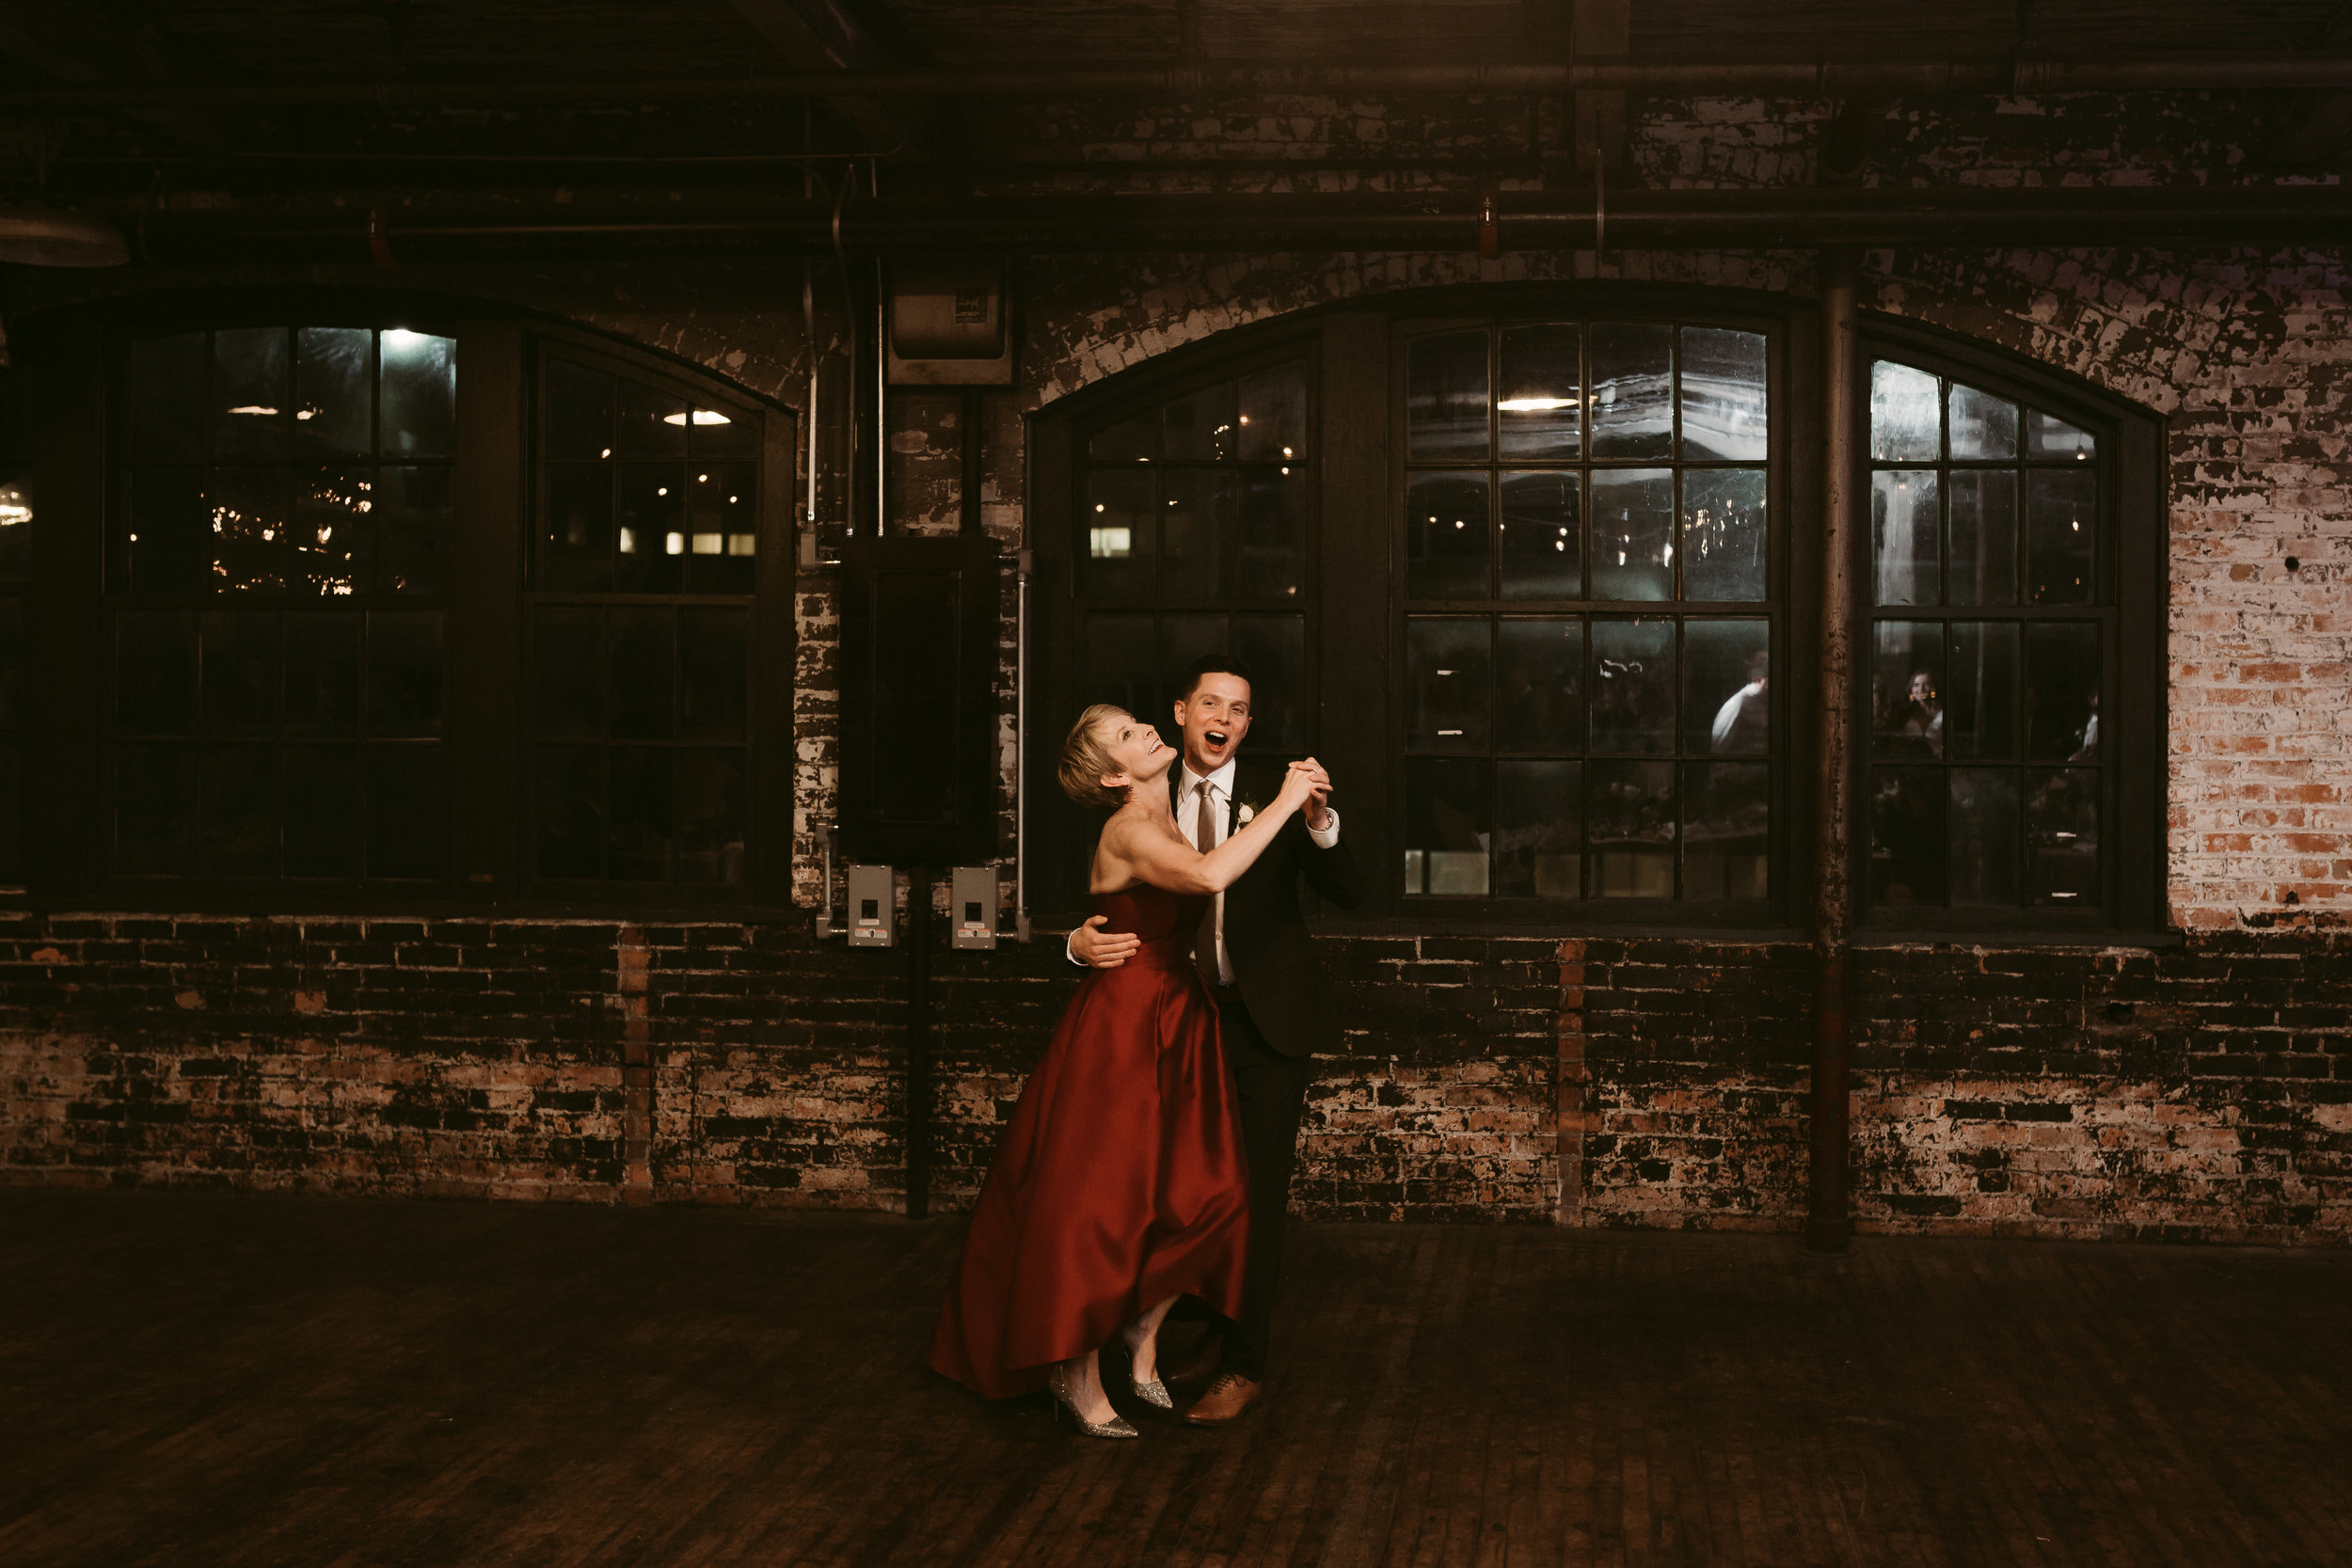 Katie_Vonasek_Photography_Ford_Piquette_Plant_Wedding_Detroit107.JPG